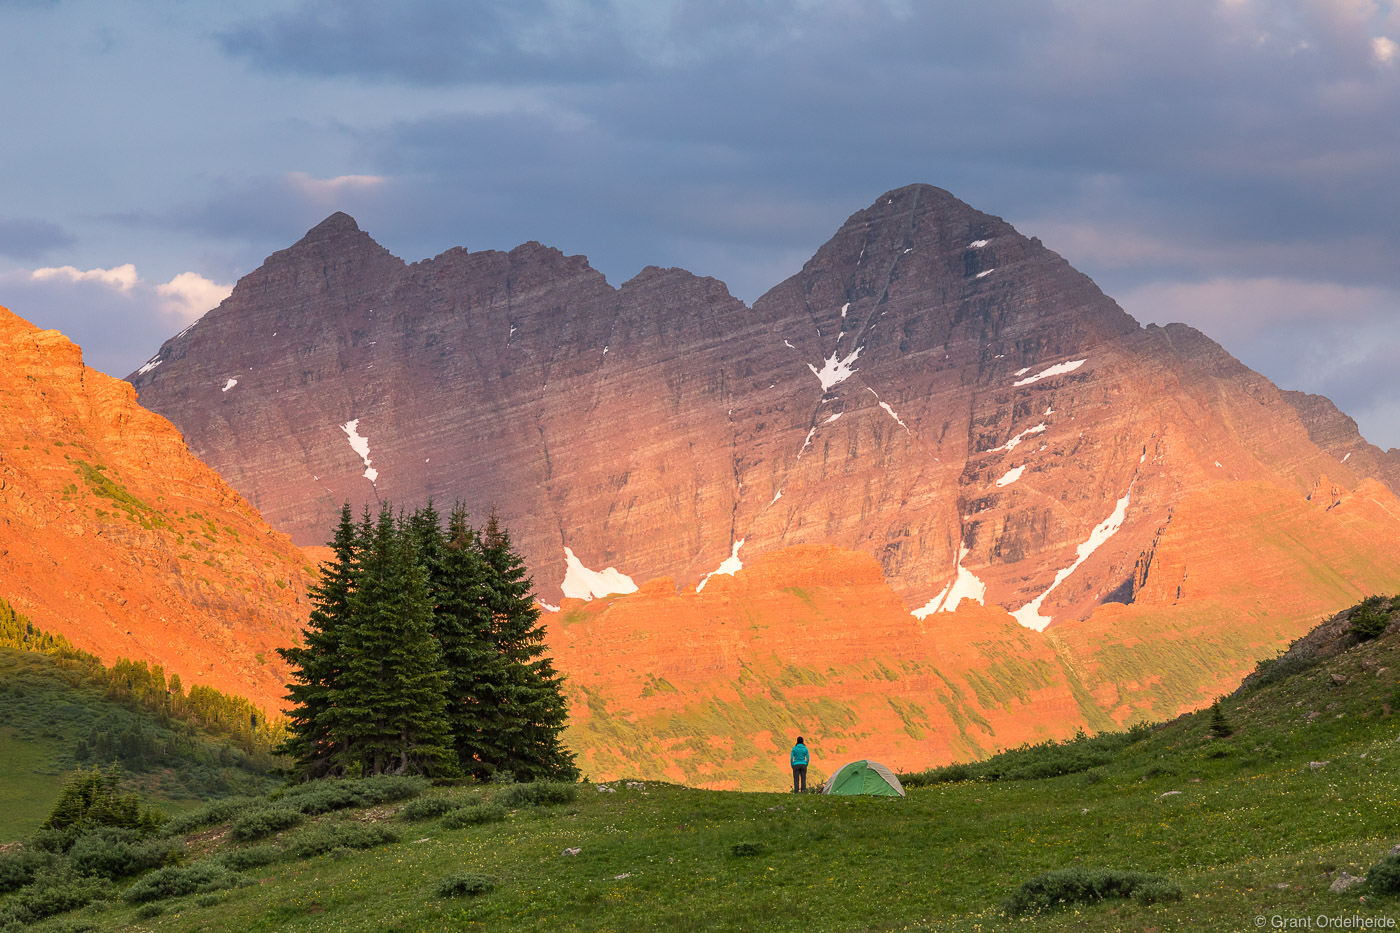 A backpacker taking in sunset on the backside of the iconic Maroon Bells near Aspen Colorado.